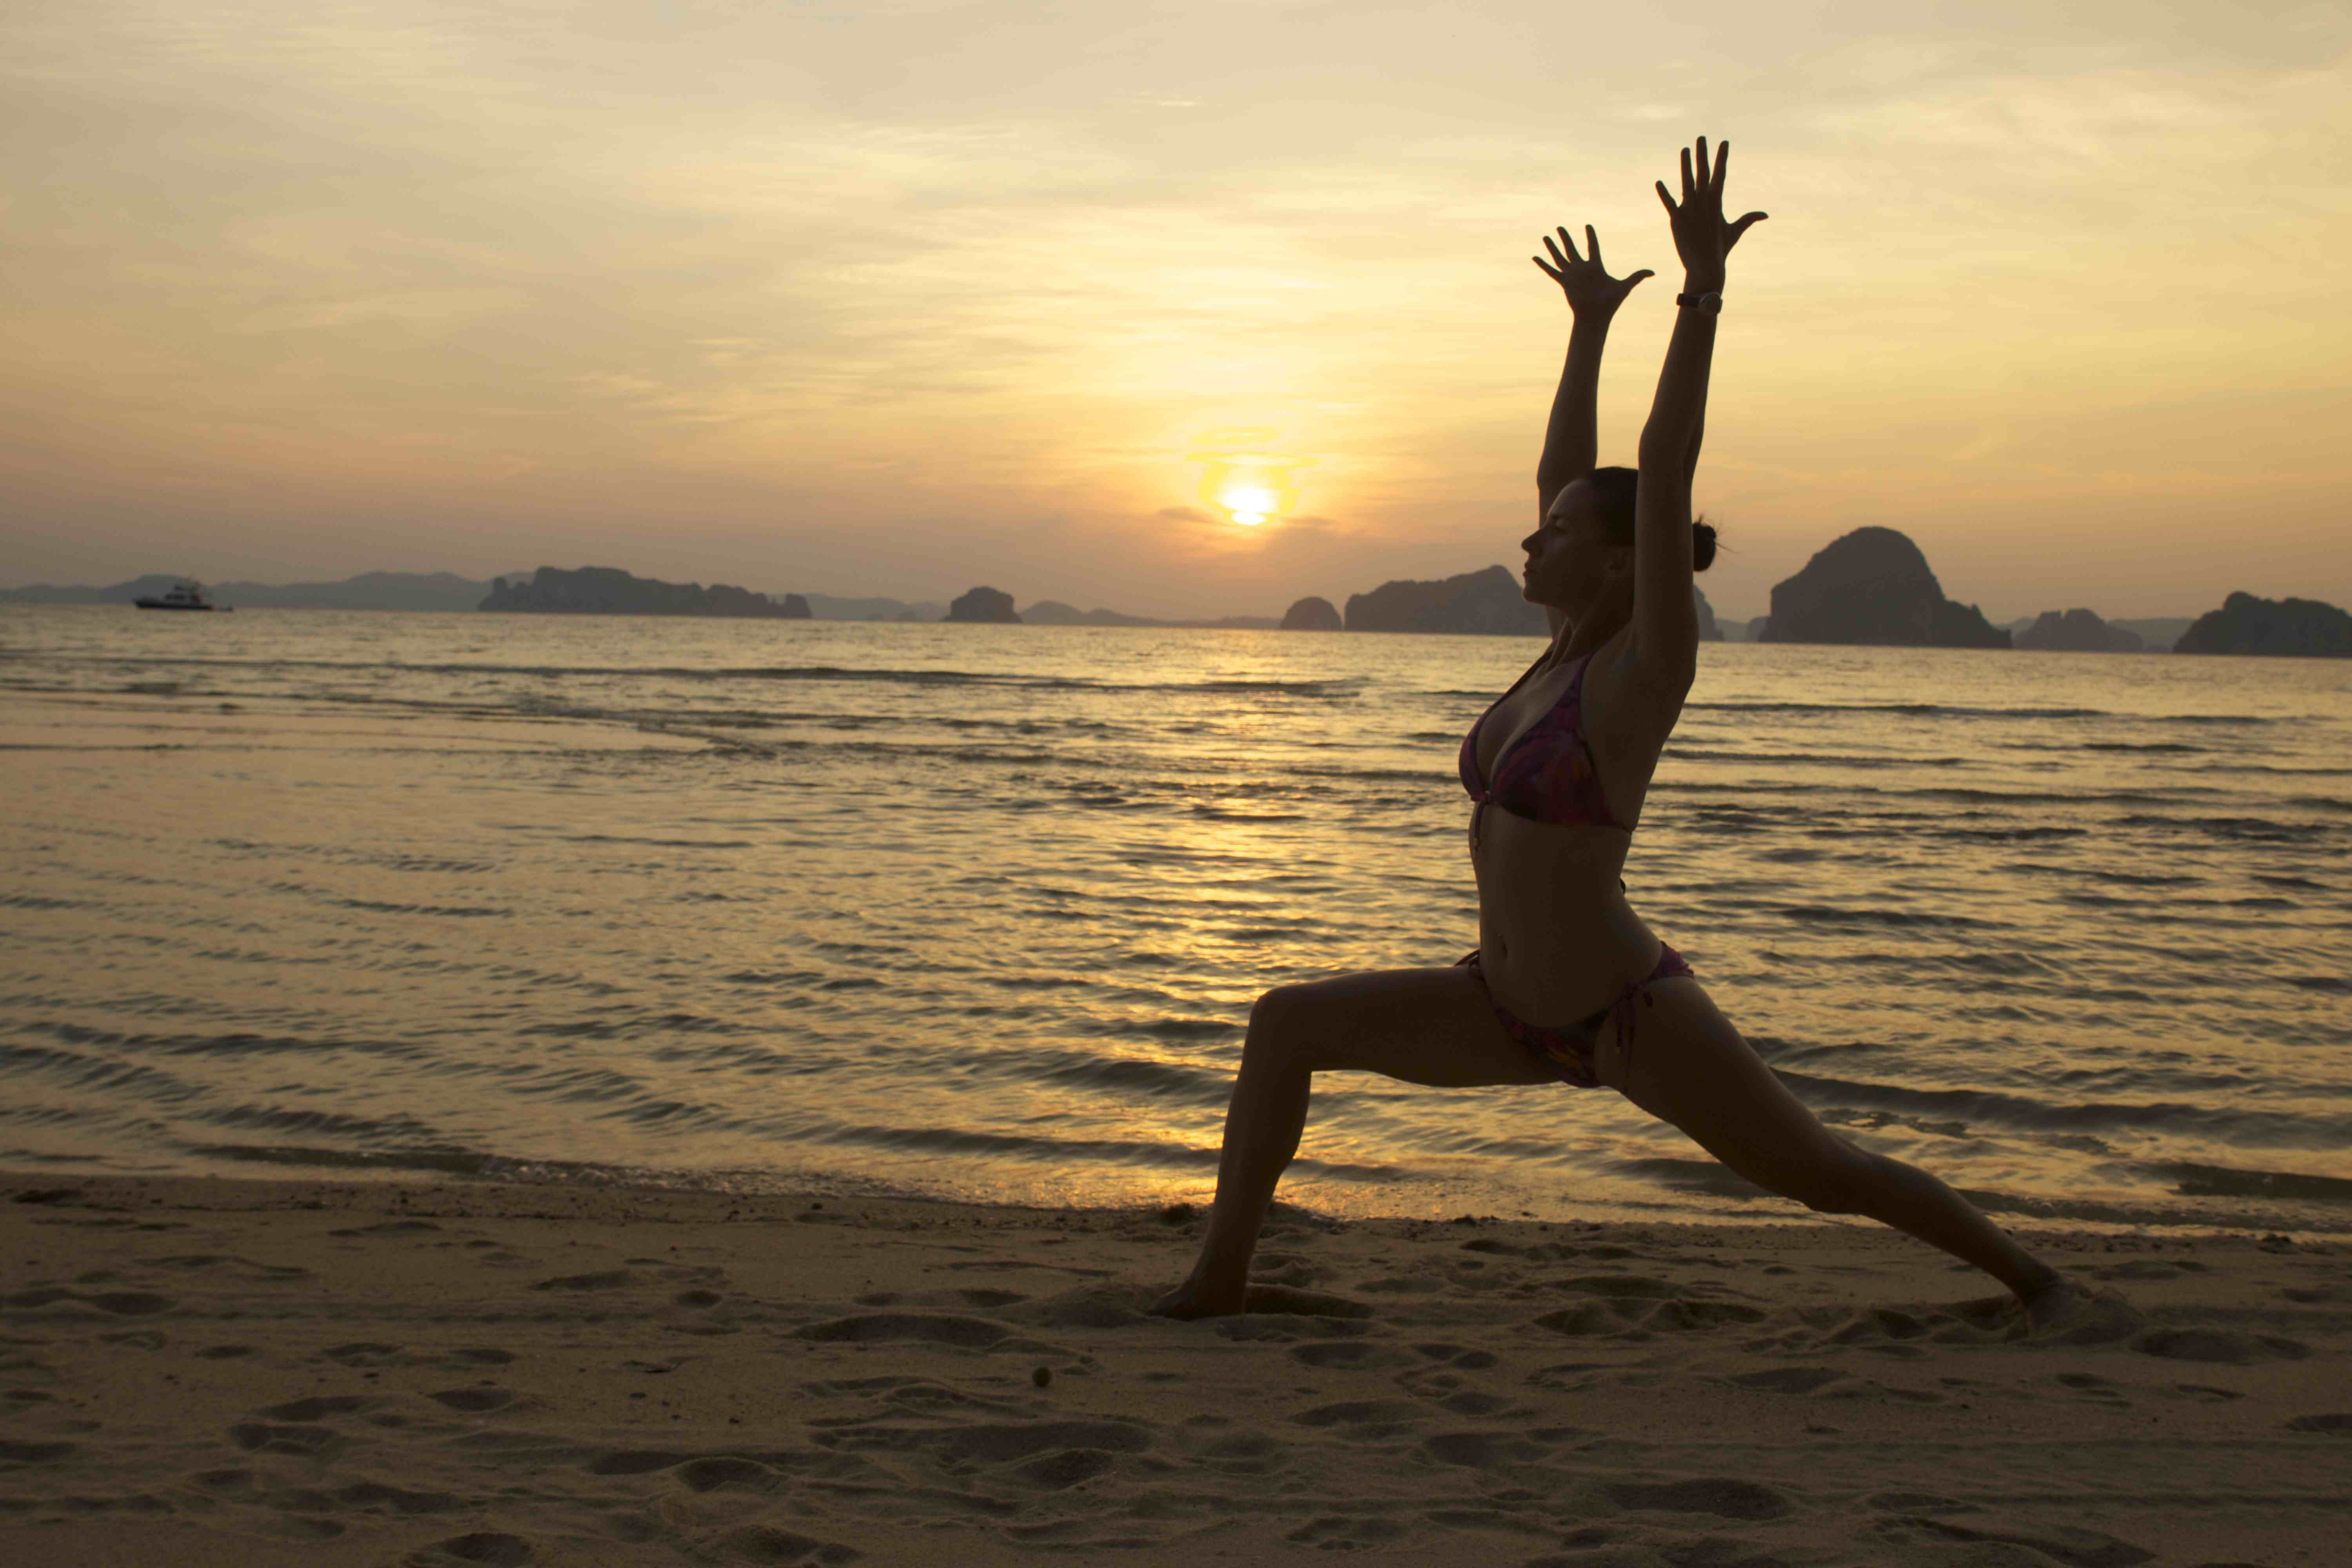 Yoga On The Beach Wallpapers High Quality | Download Free